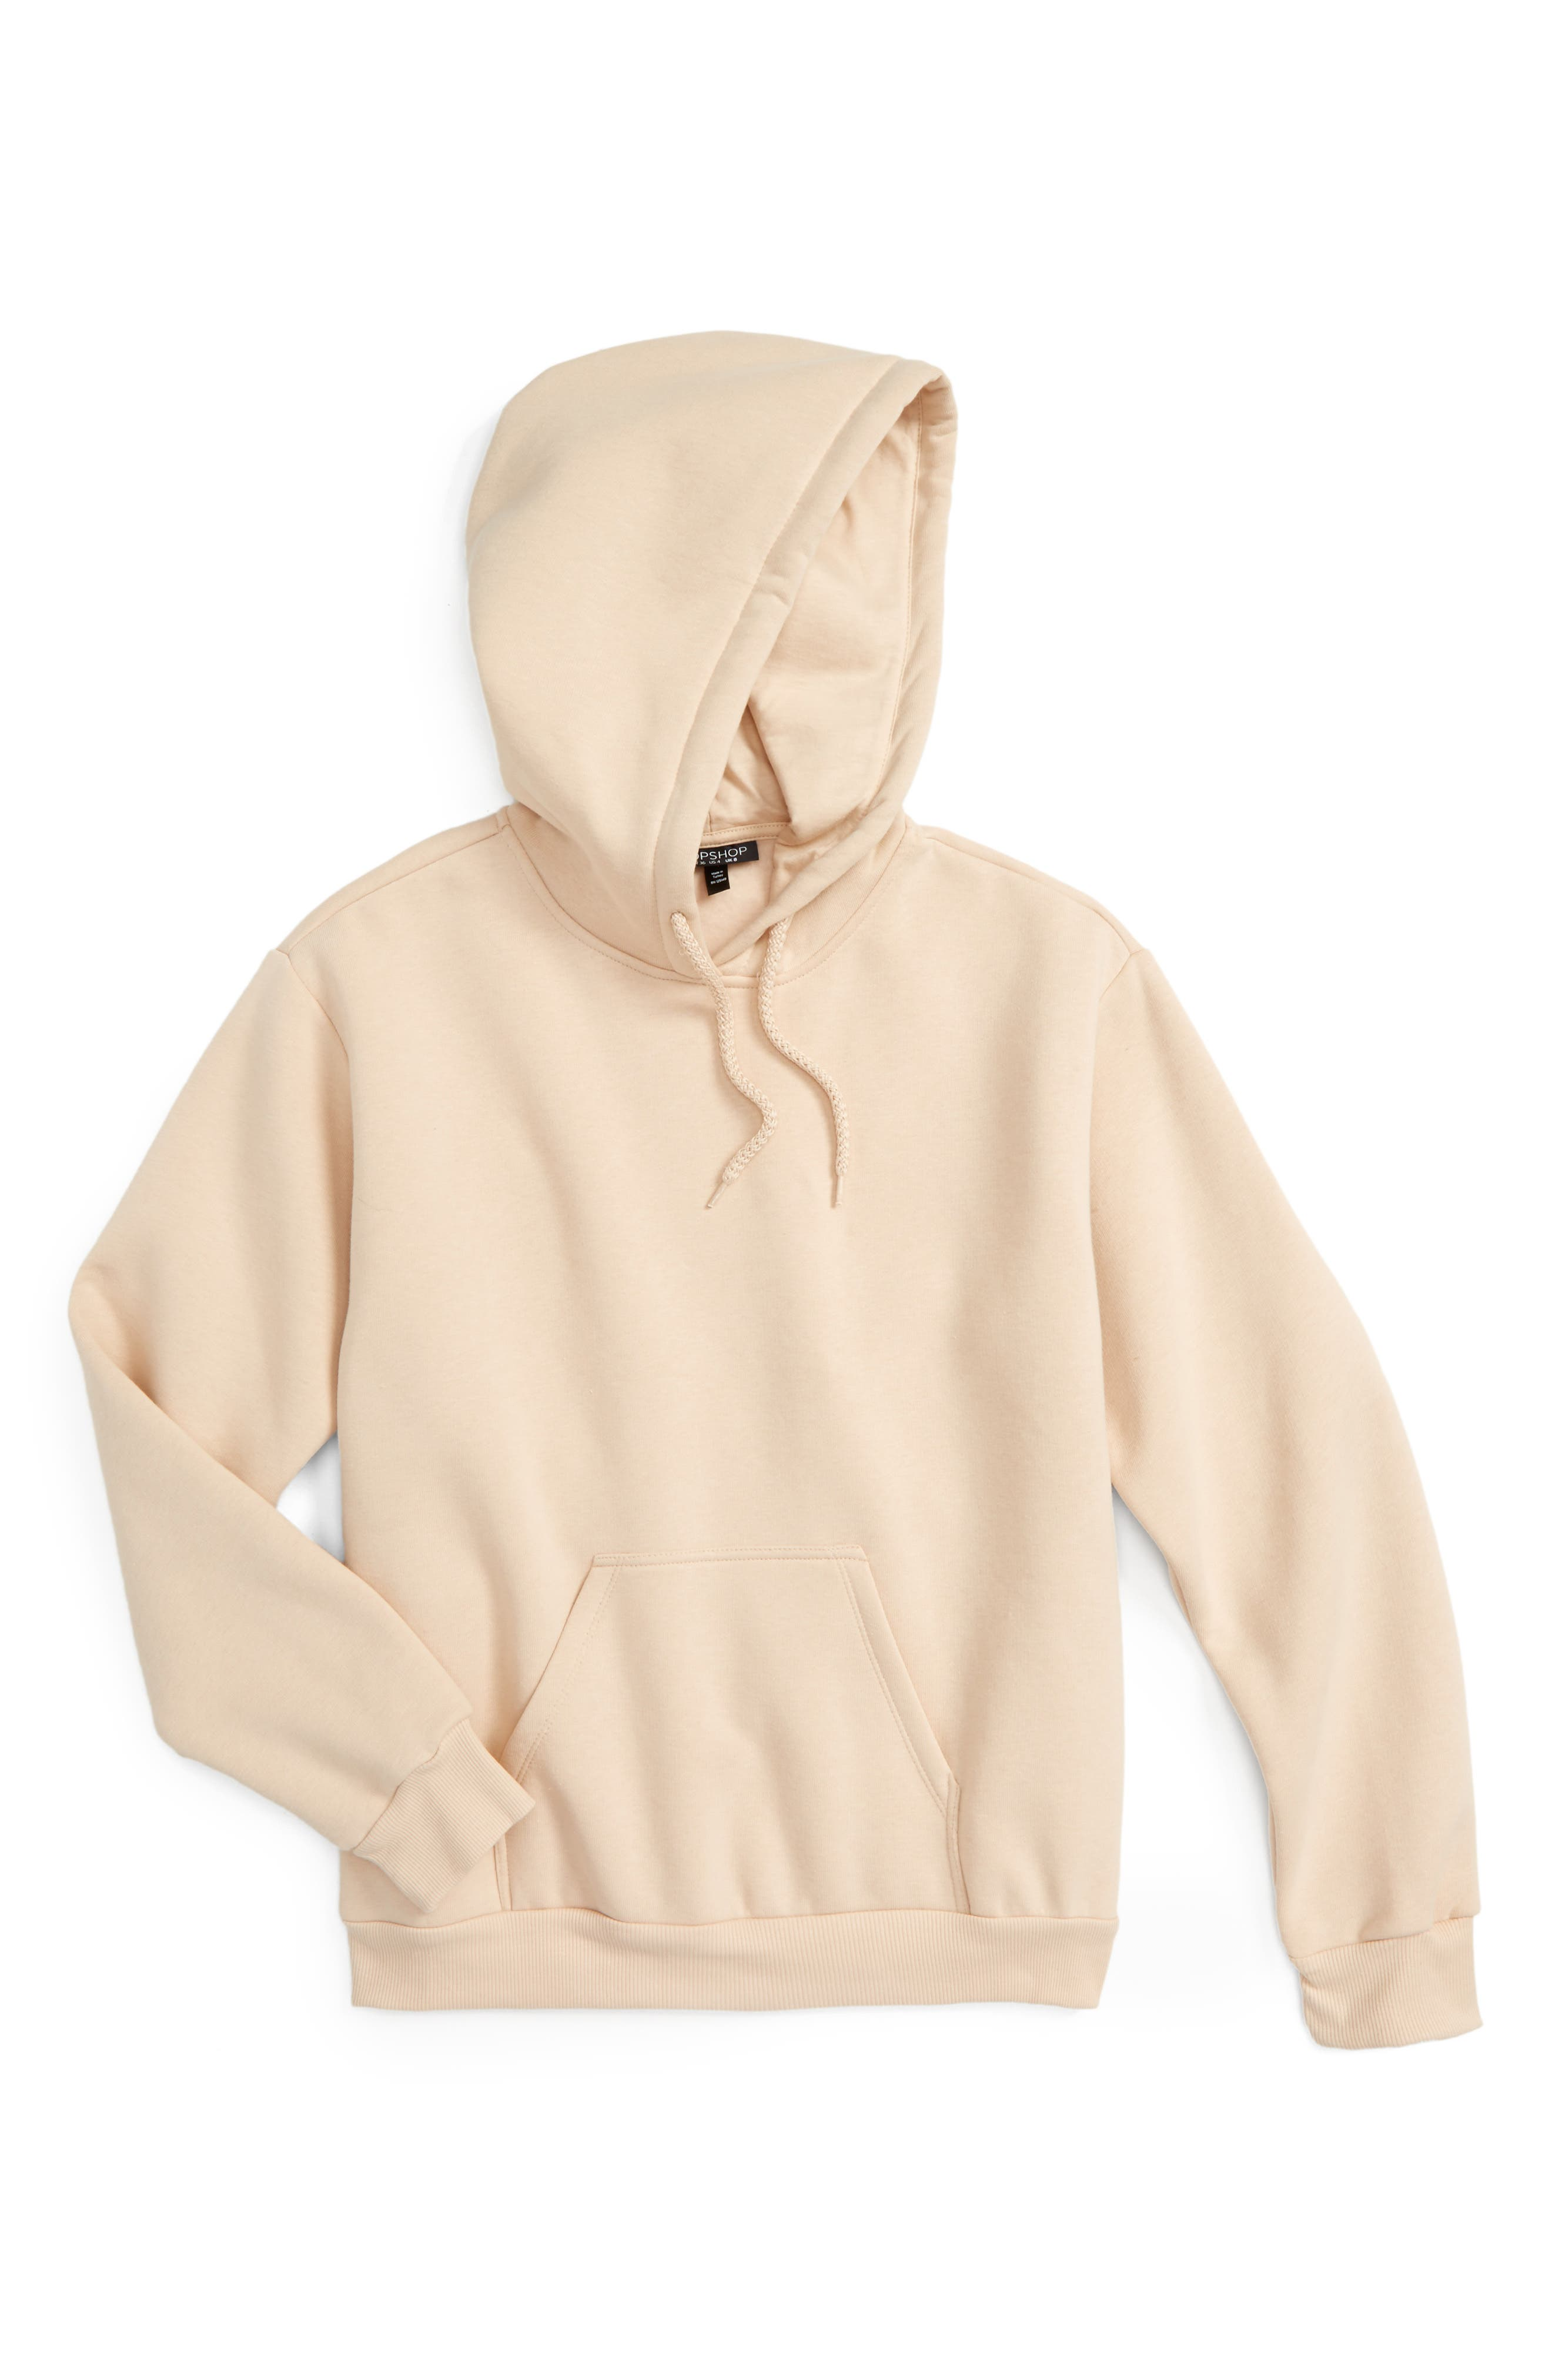 Oversize Hoodie,                             Alternate thumbnail 6, color,                             250